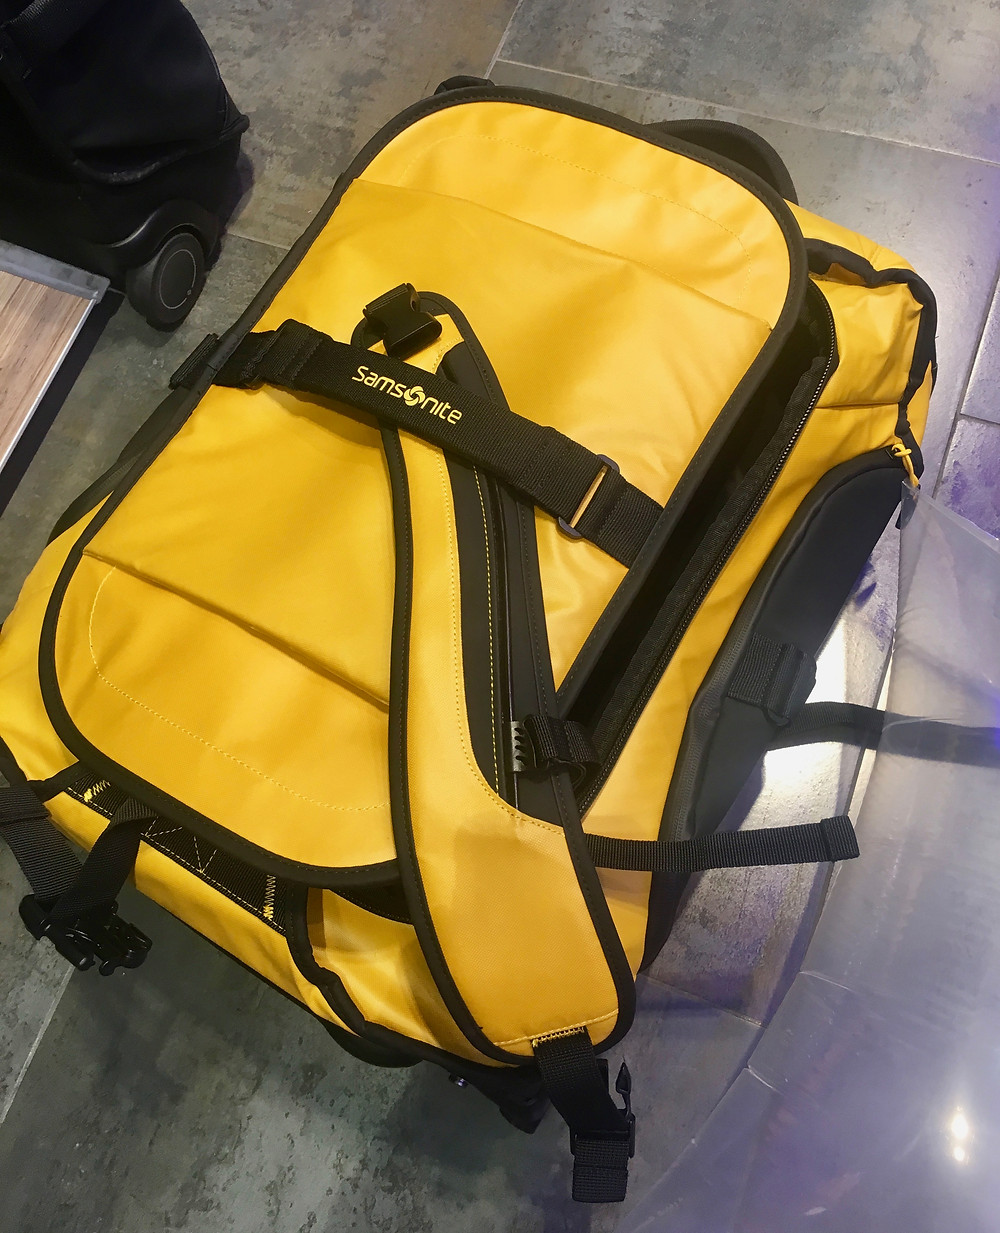 Luggage backpack suitcase - will it fit? One year packing